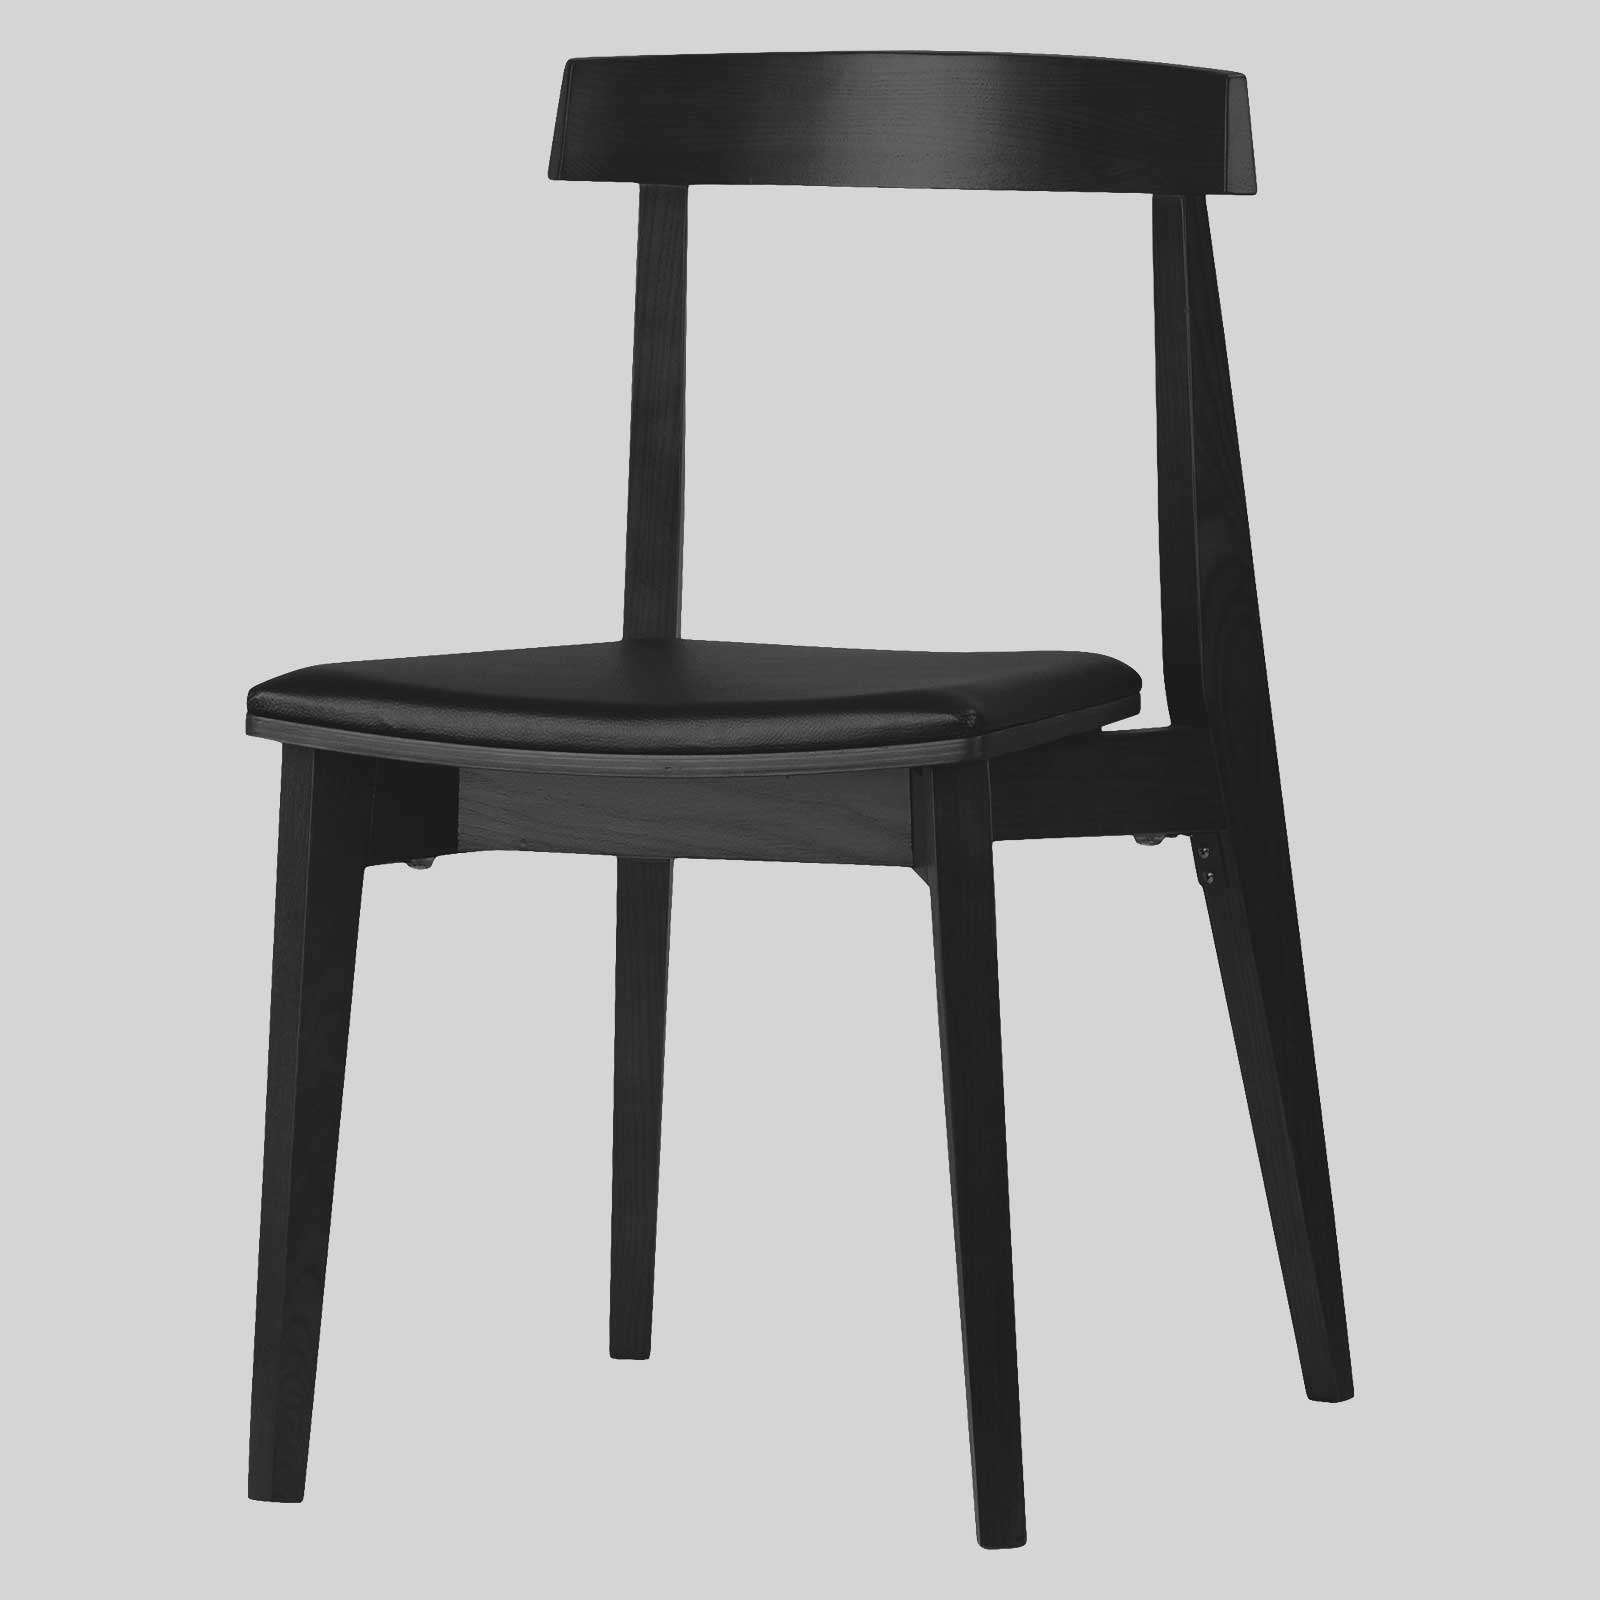 Modern Hospitality Chairs Zoltan Concept Collections